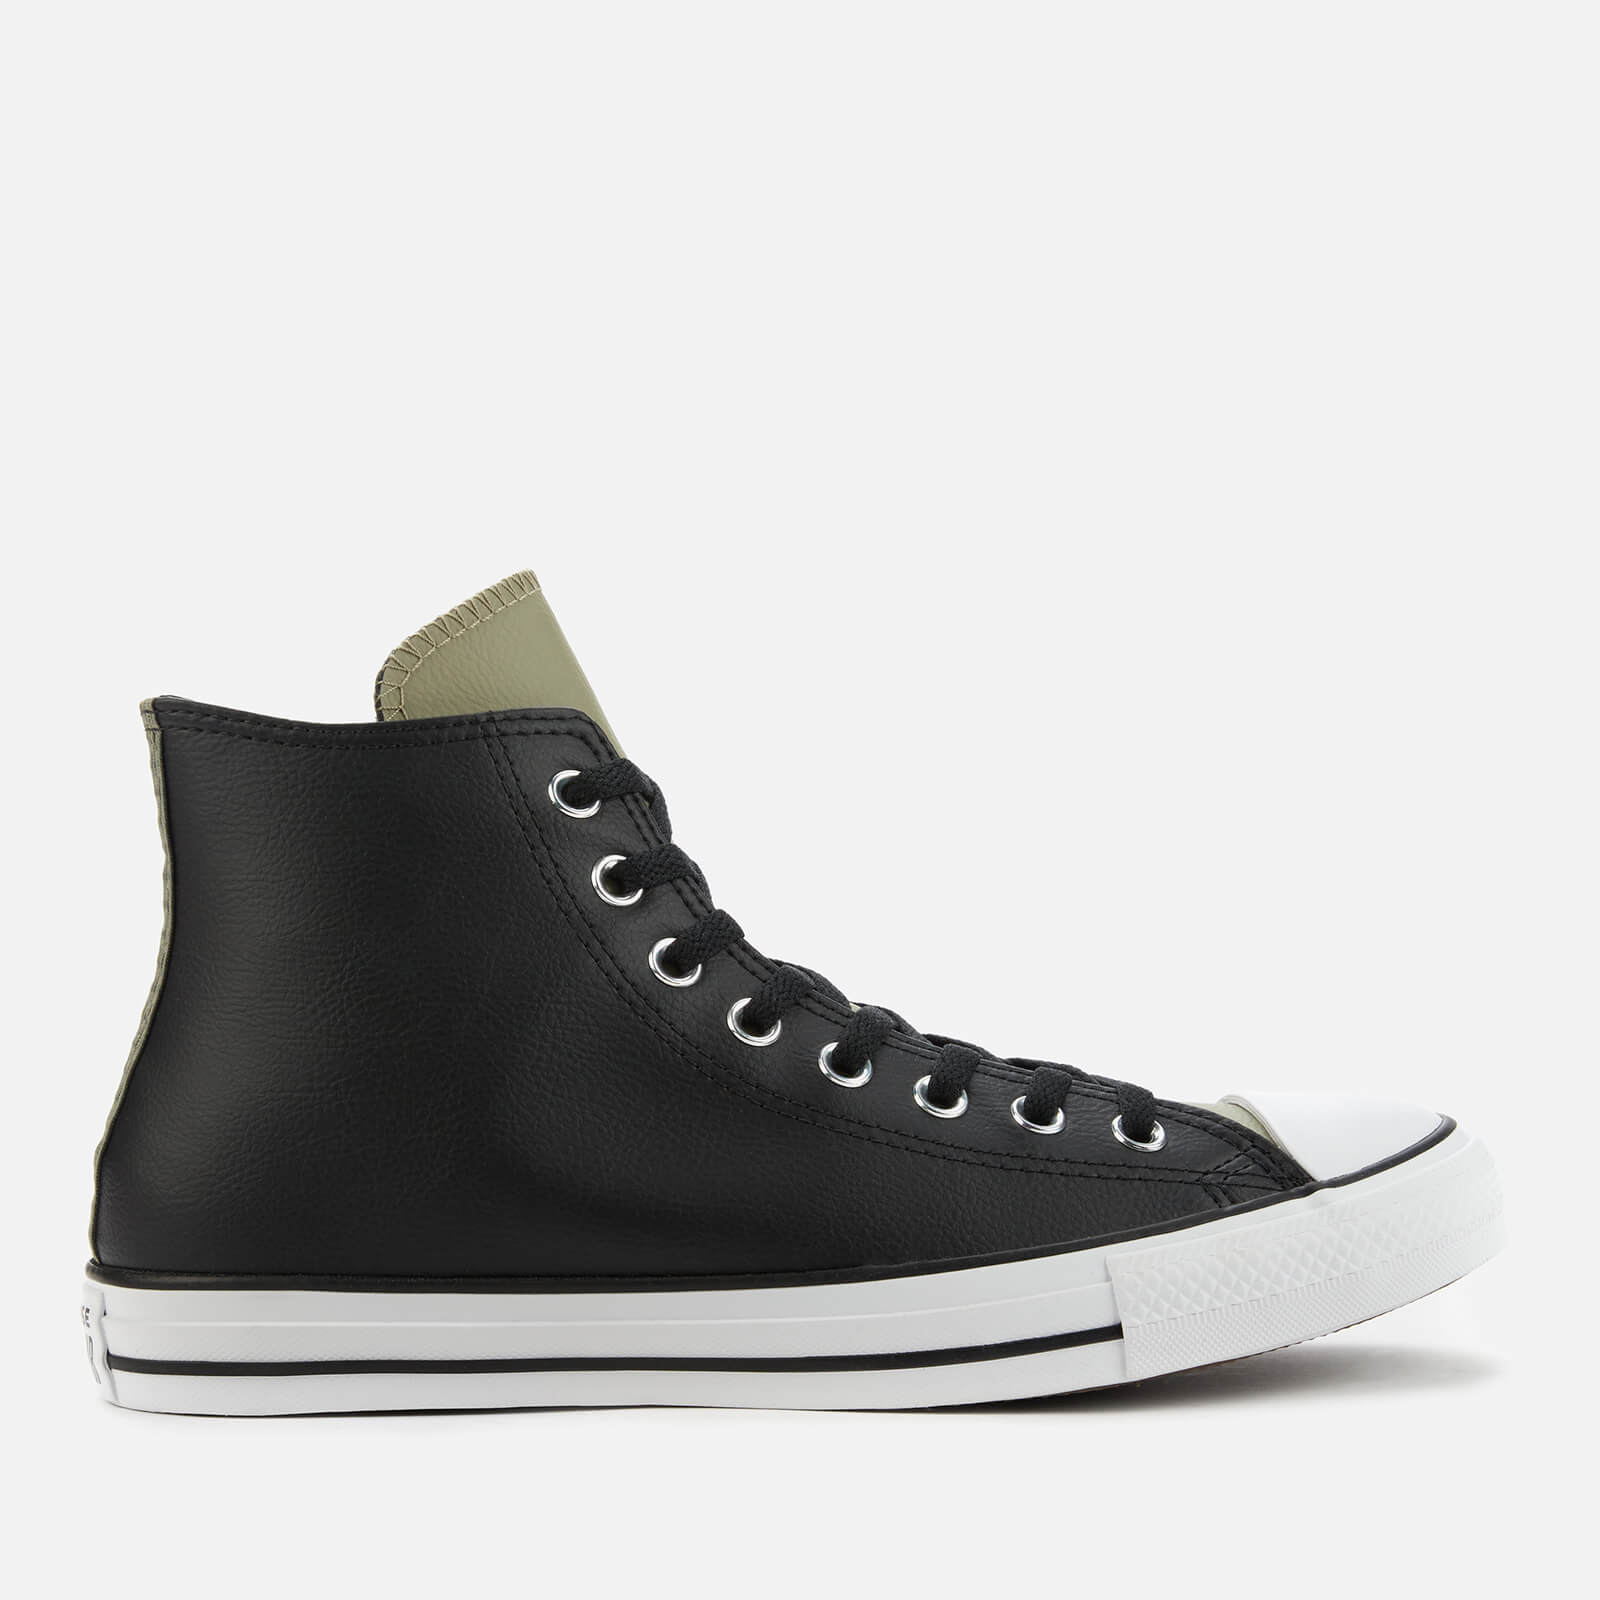 Converse Men's Chuck Taylor All Star Synthetic Leather Hi-Top Trainers - Black/Field Surplus - UK 11